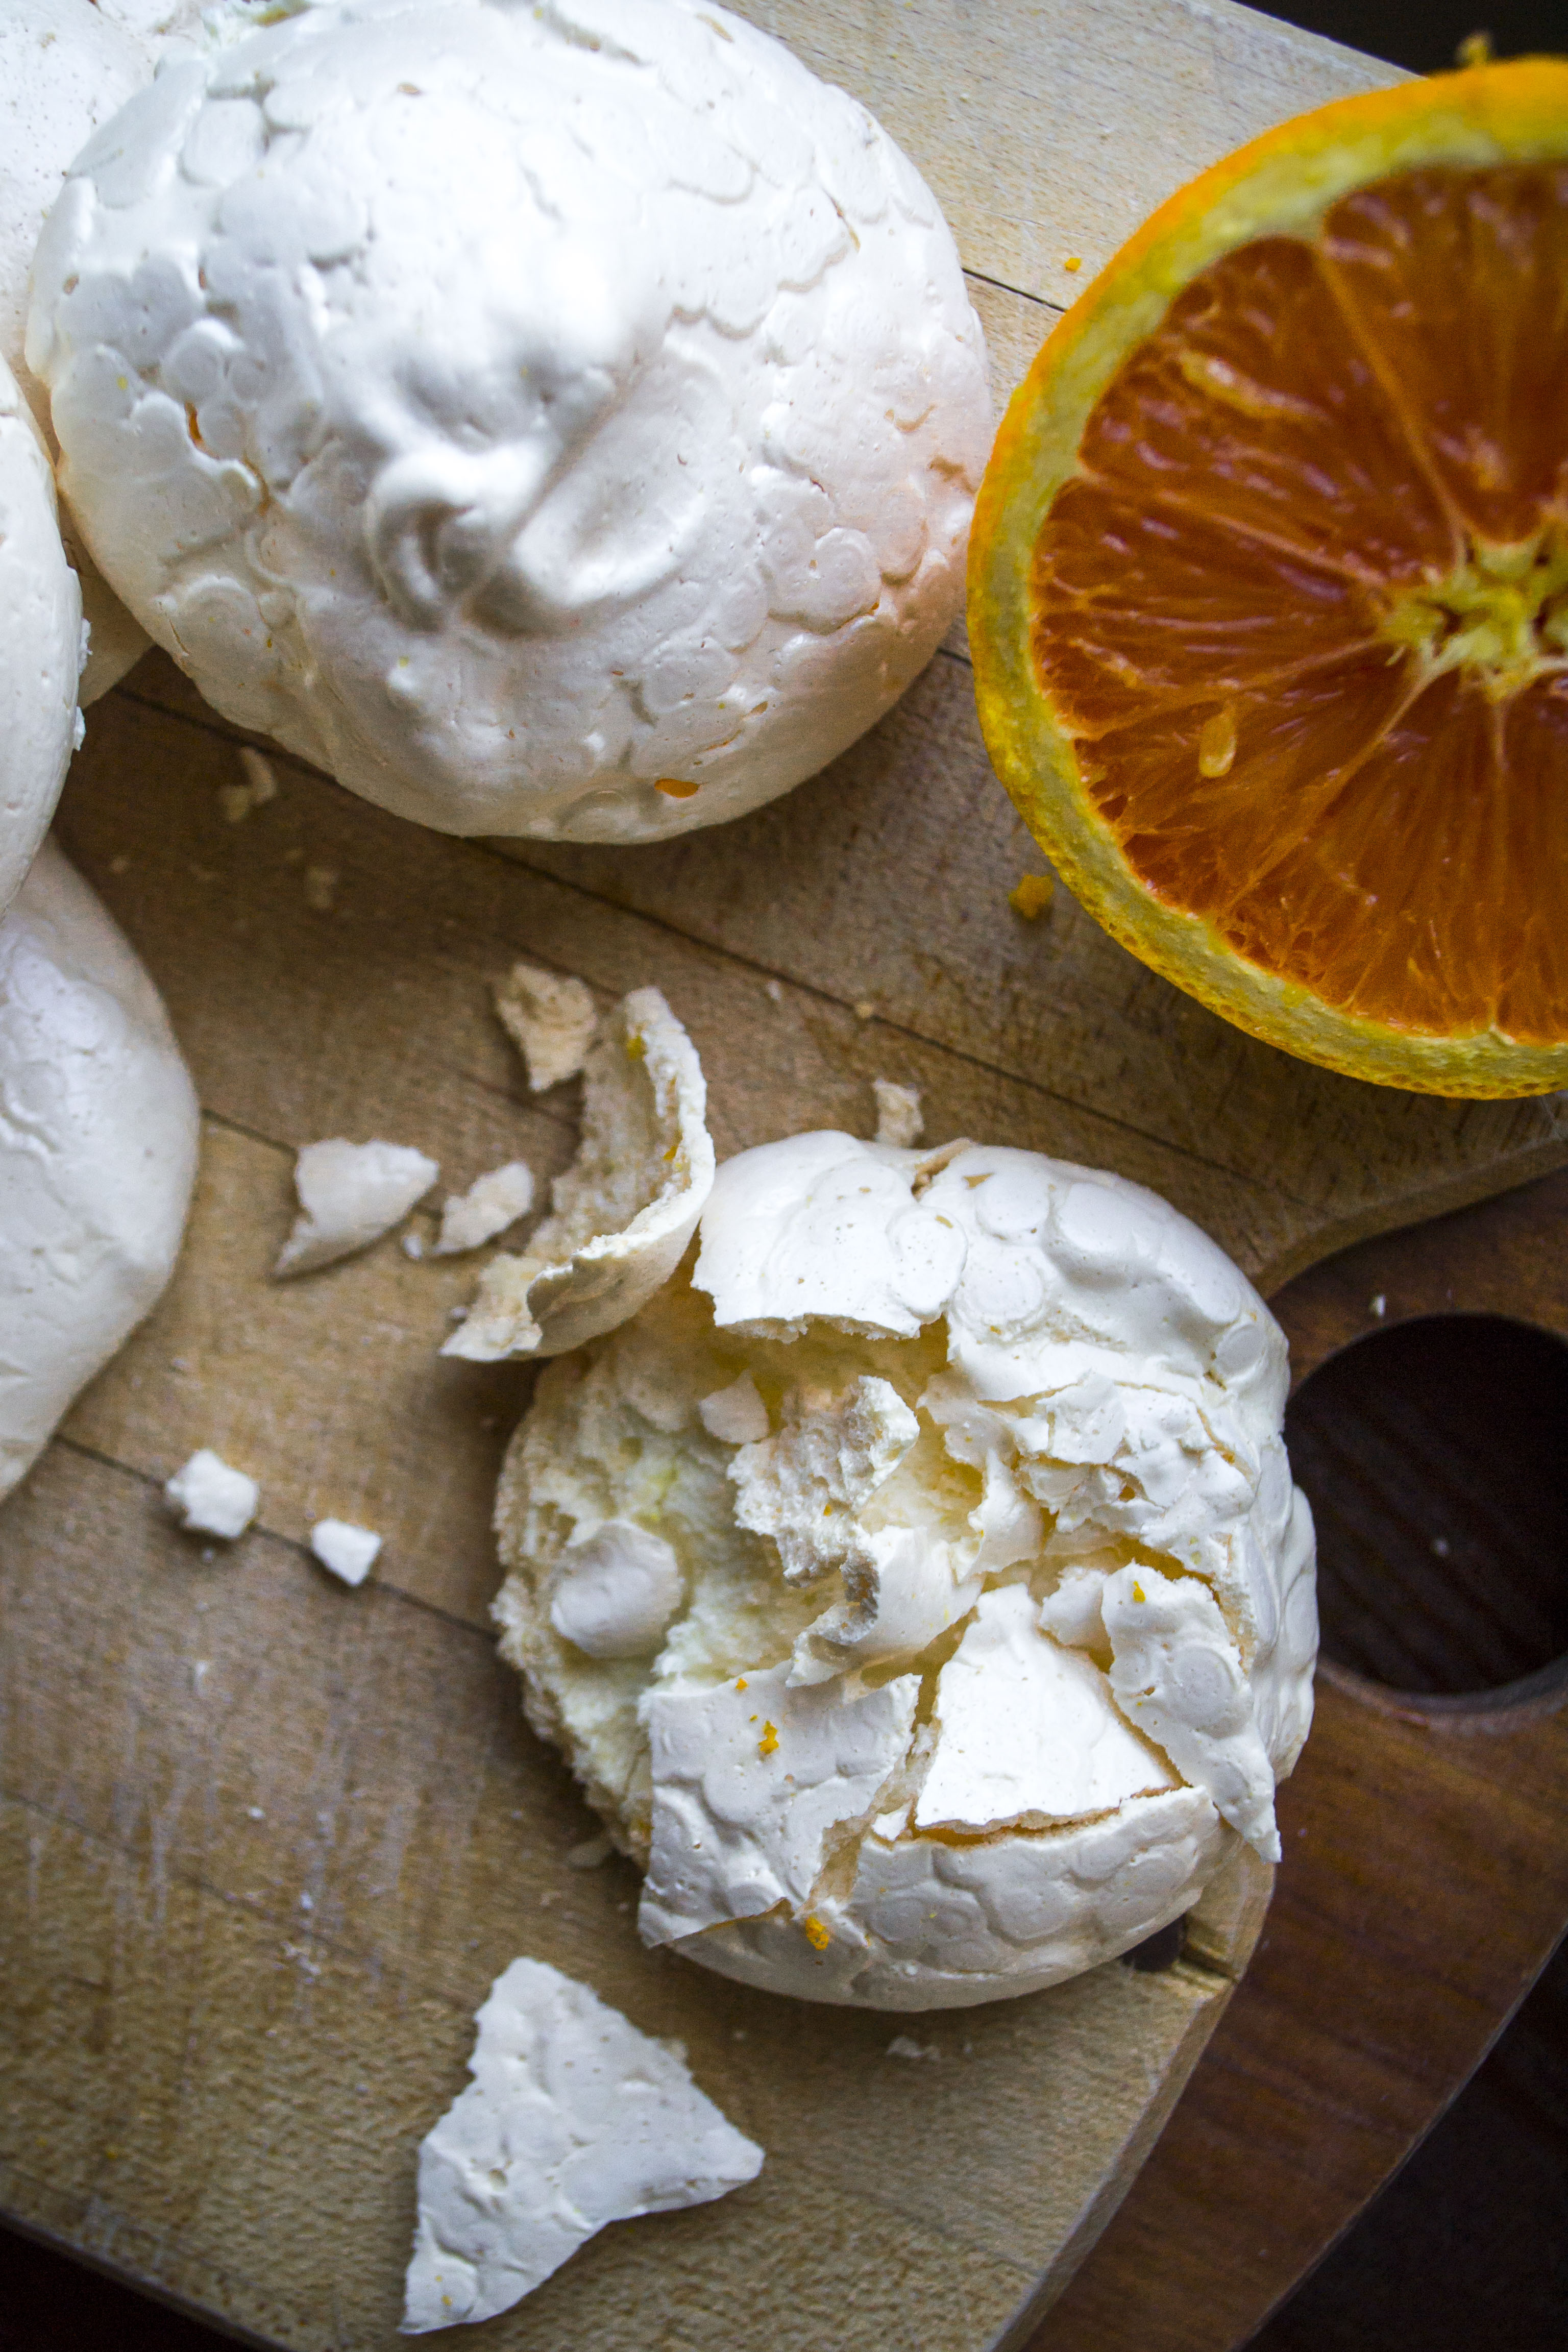 Meringues make for a delicate and refined dessert at any bridal shower, birthday party or family gathering. ALAN BENNETT/Journal Tribune